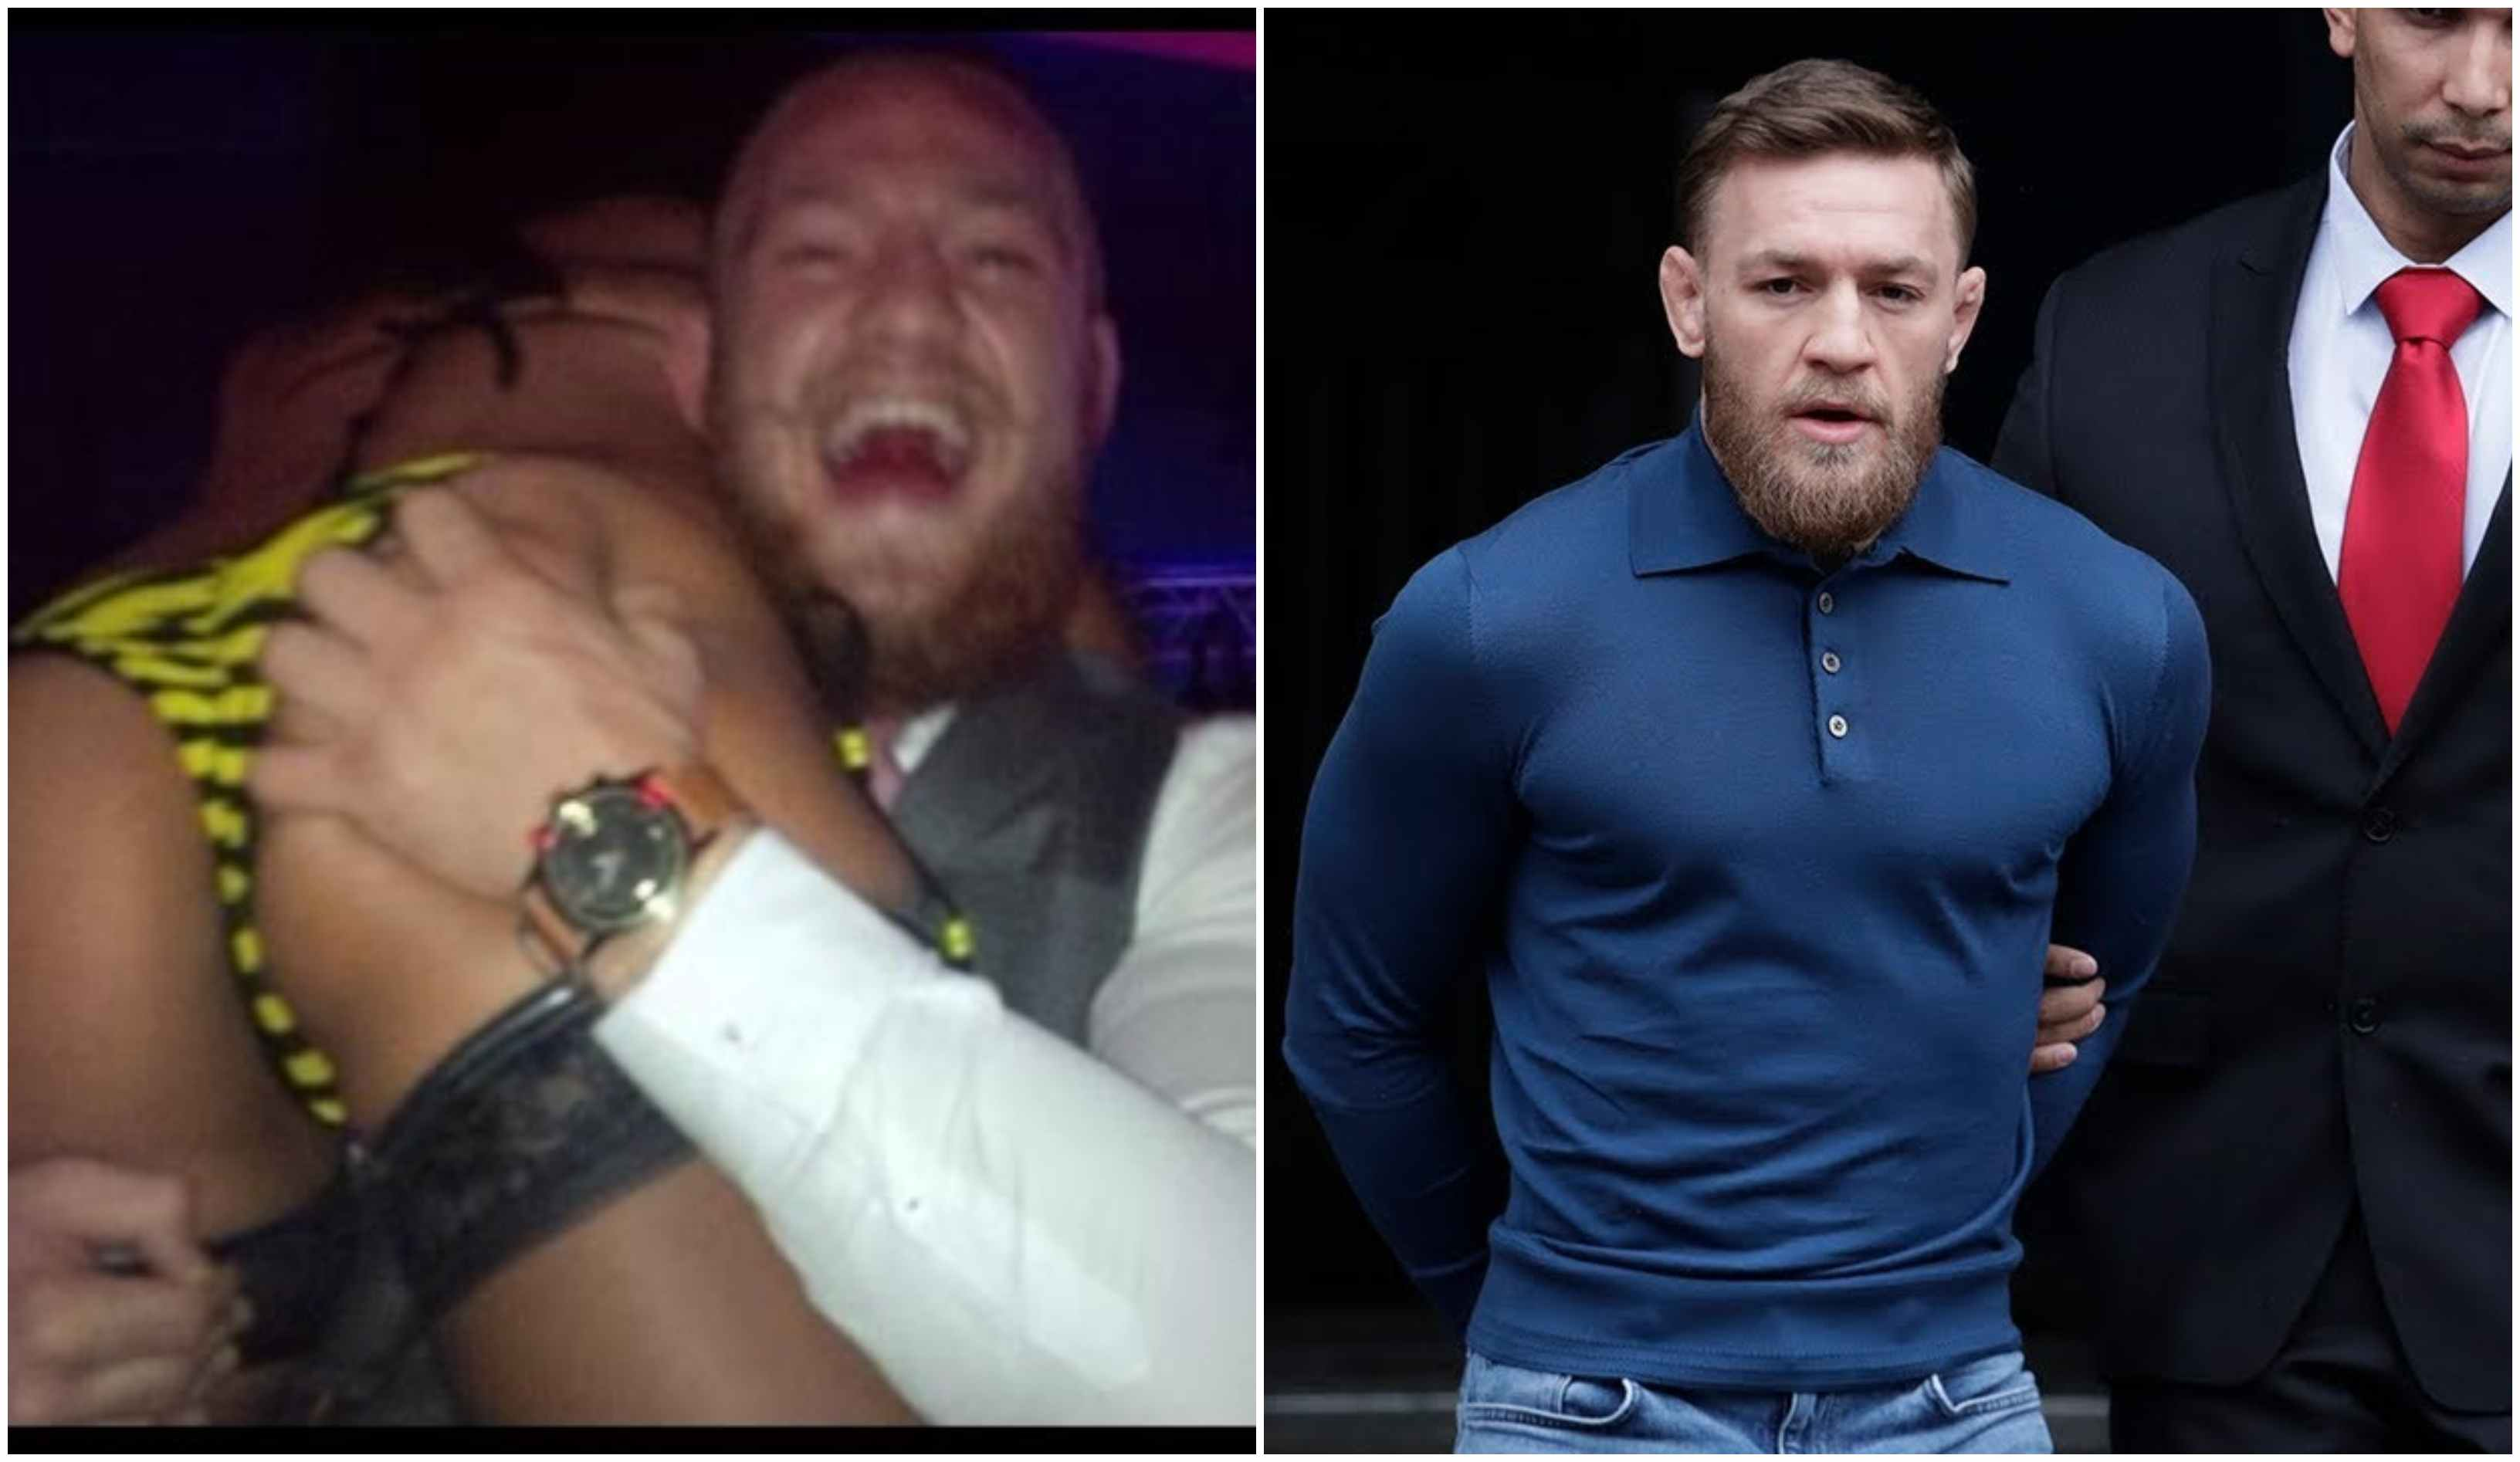 Conor McGregor responds to sexual assault allegations ahead of UFC 246 - Conor McGregor